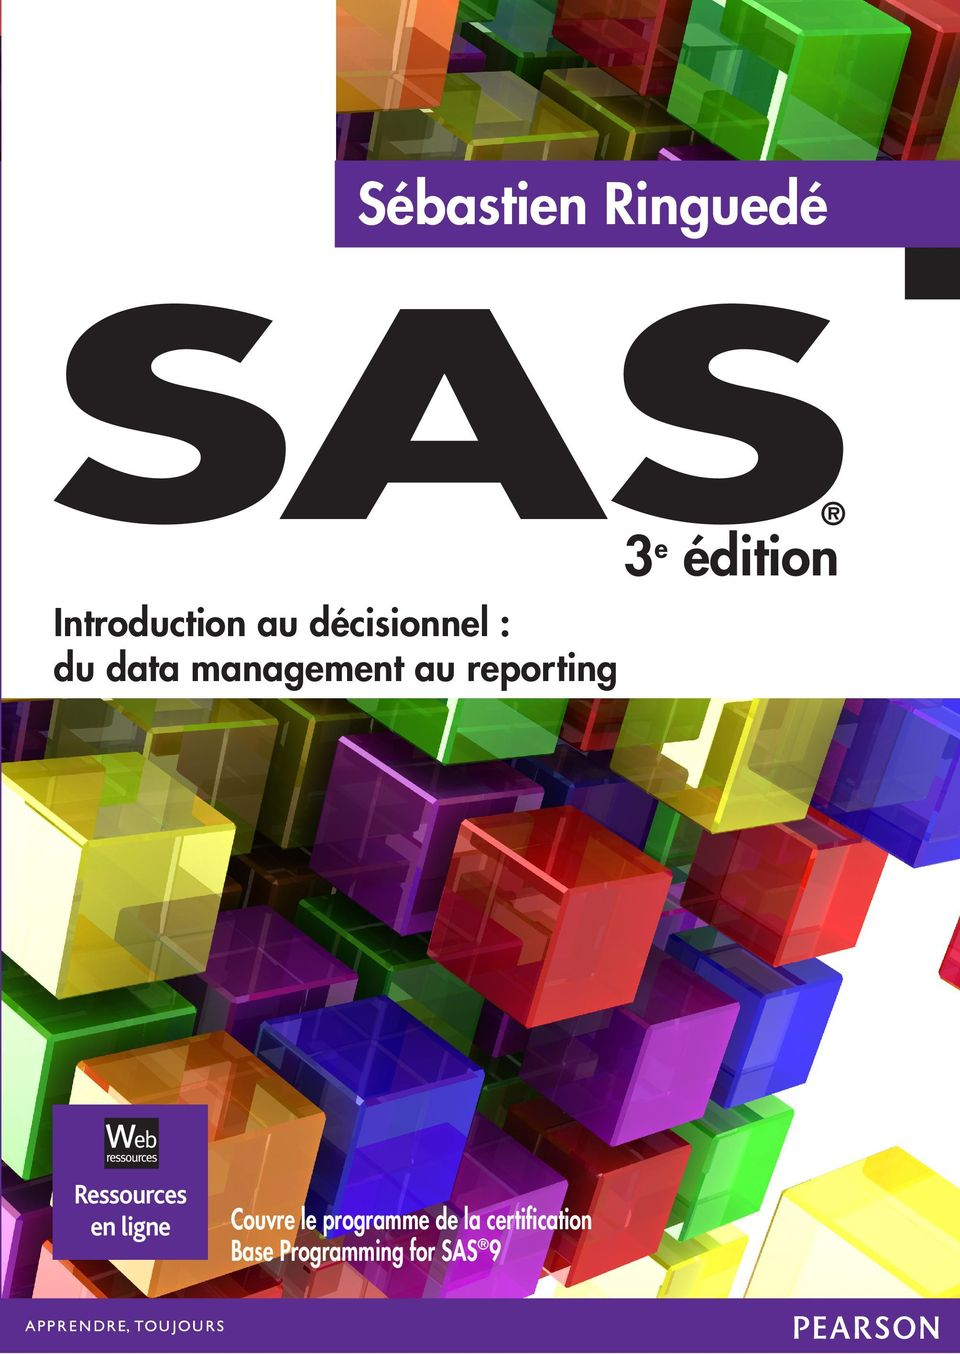 du management data management au reporting au reporting 3 e édition édition